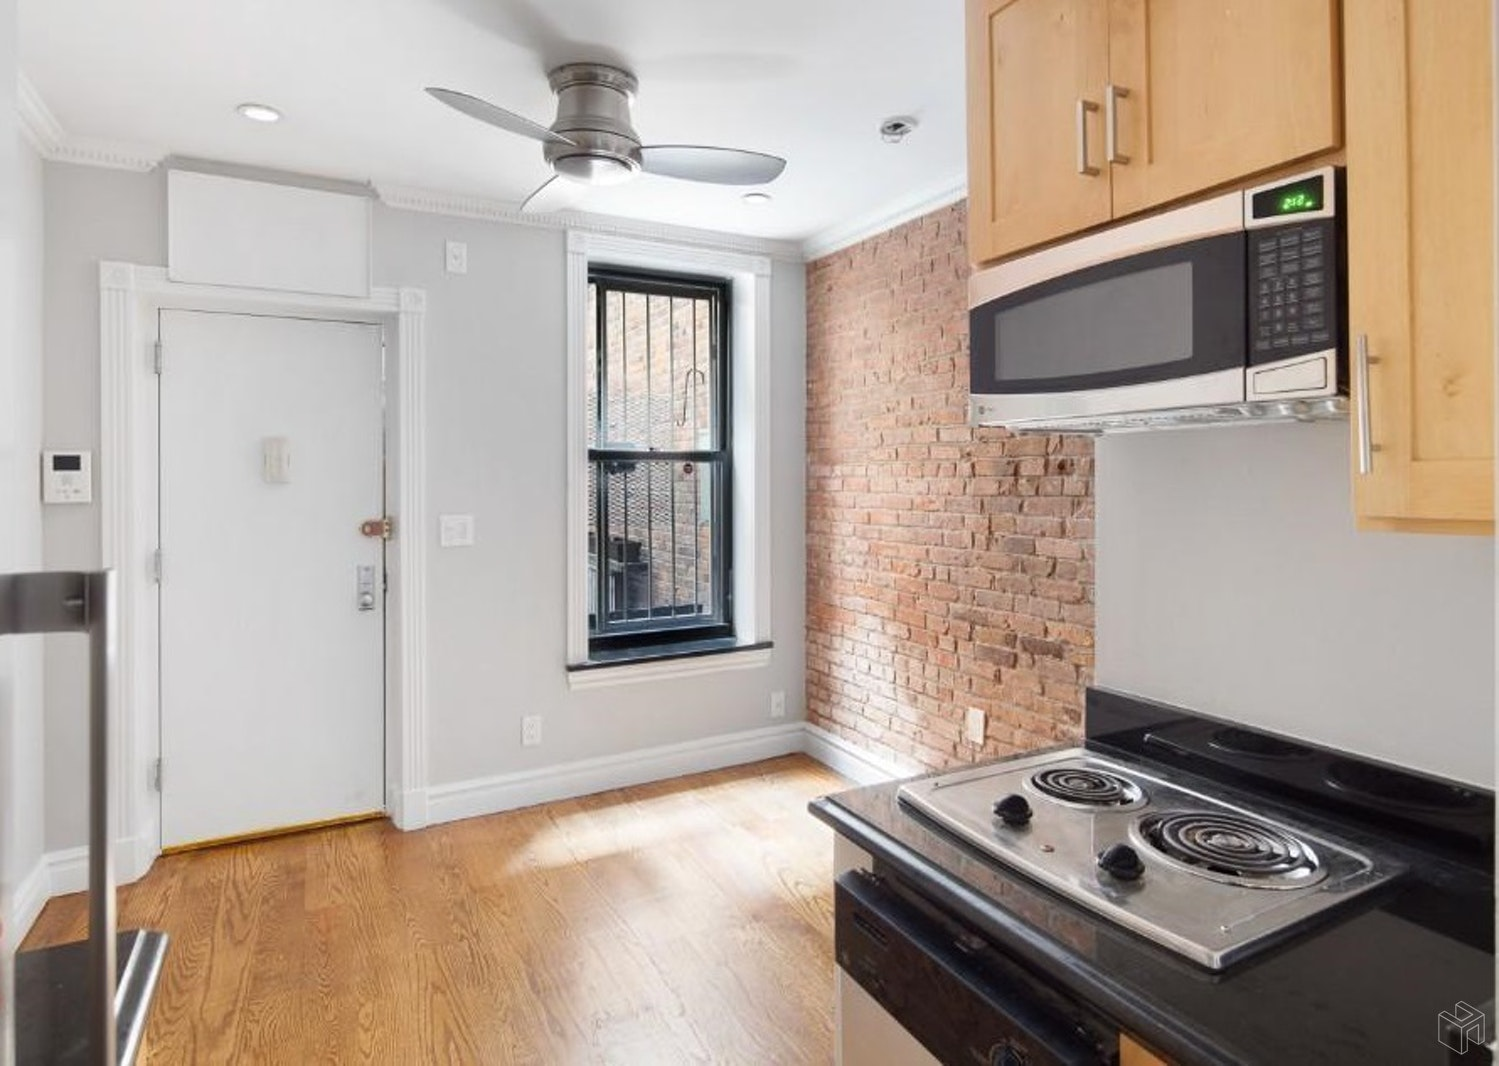 439 West 50th Street 1rw, Midtown West, NYC, 10019, Price Not Disclosed, Rented Property, Halstead Real Estate, Photo 2